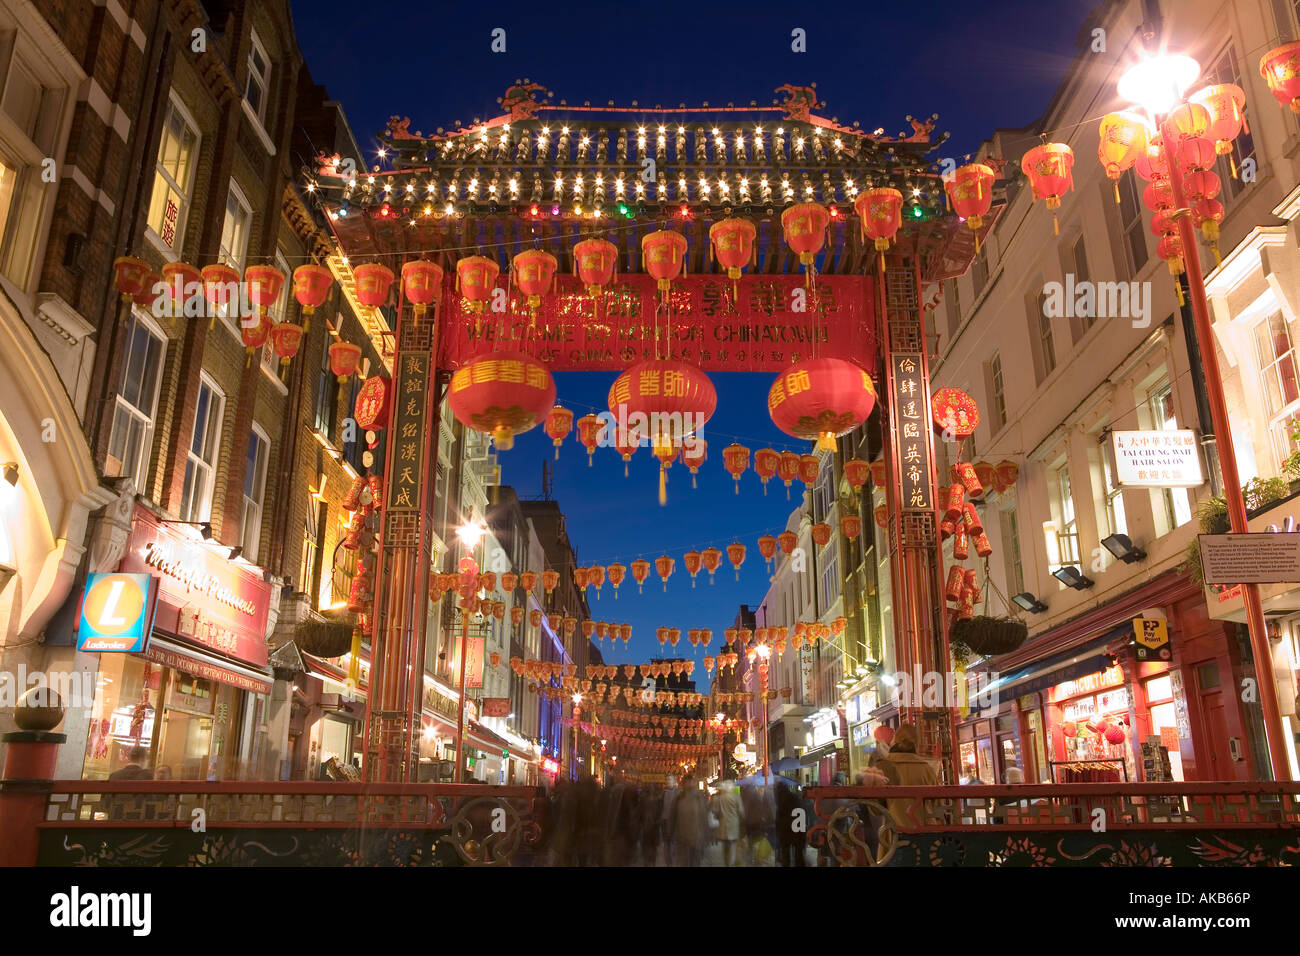 Chinese New Year, China Town, London, England Stock Photo